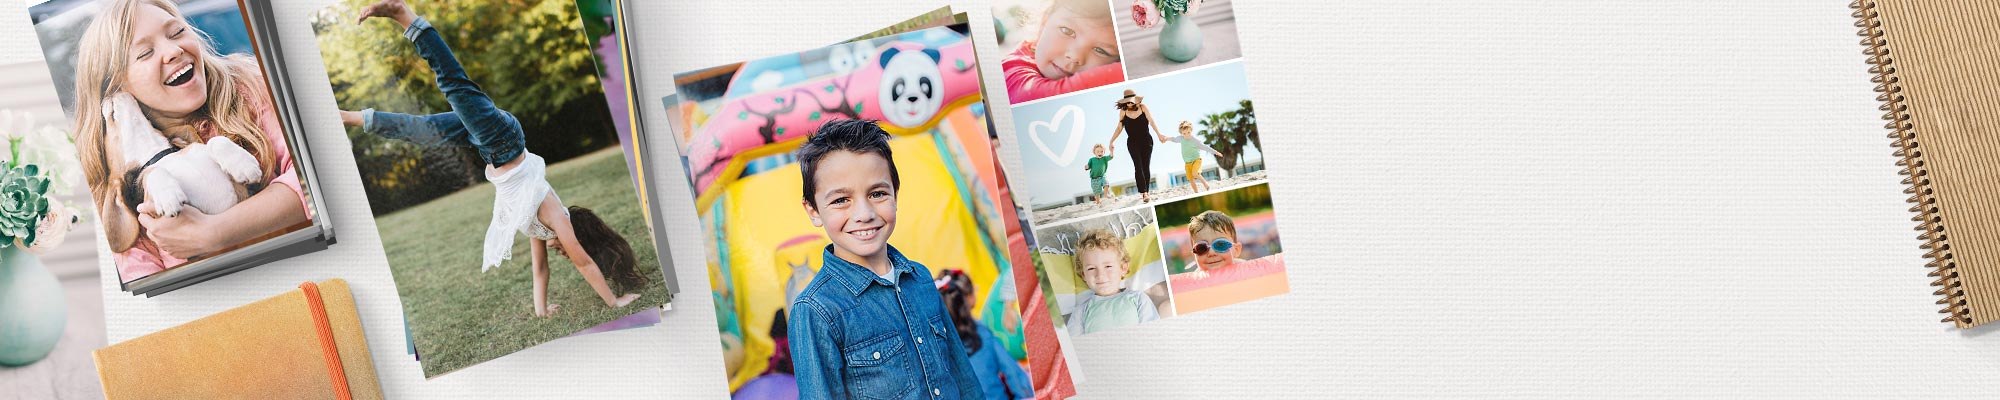 Prints Great moments you can hold onto, literally.Share them, save them and cherish them.